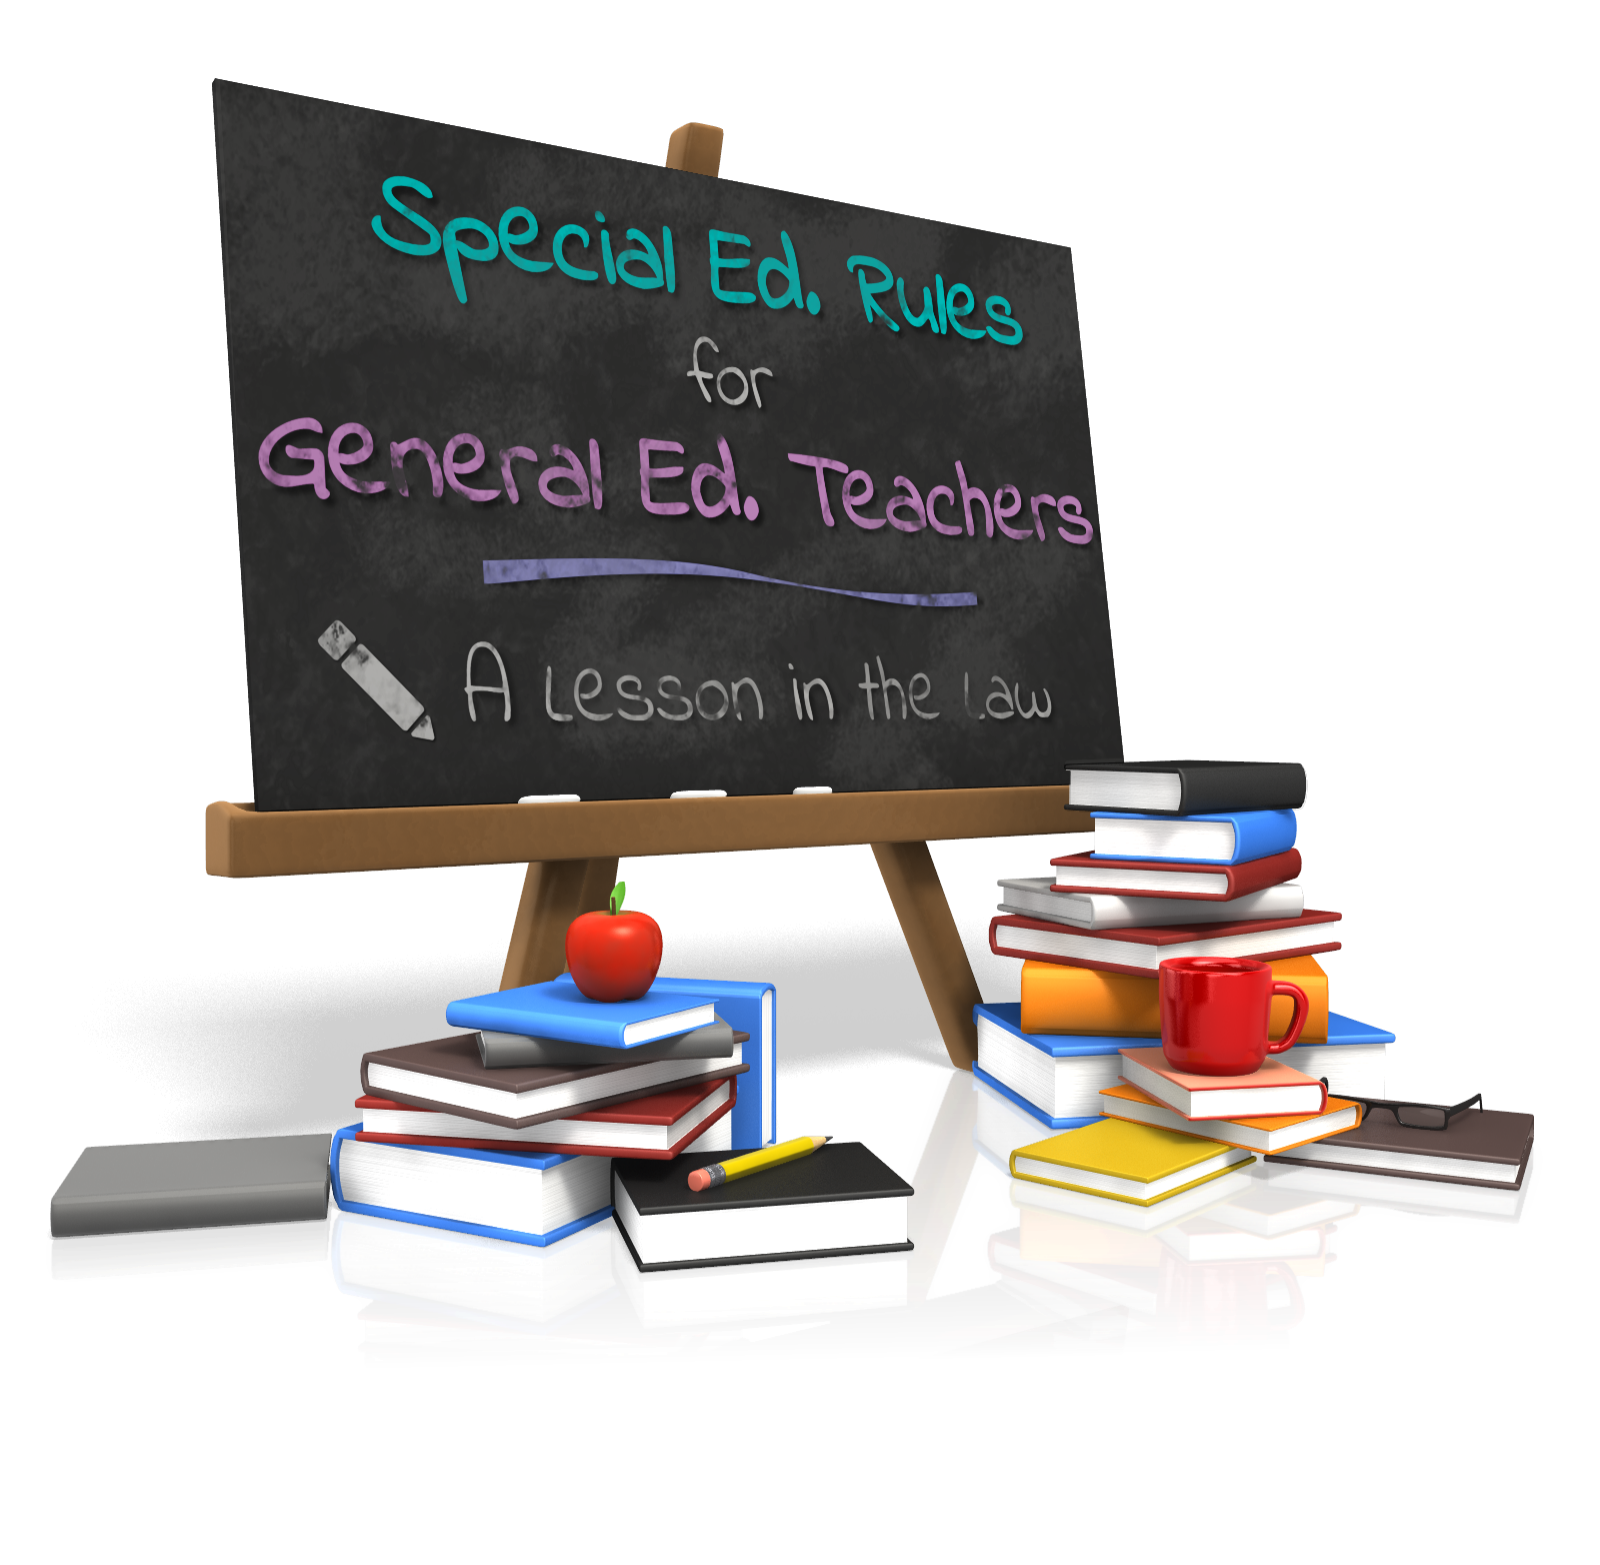 Special Ed. Rules for General Ed.